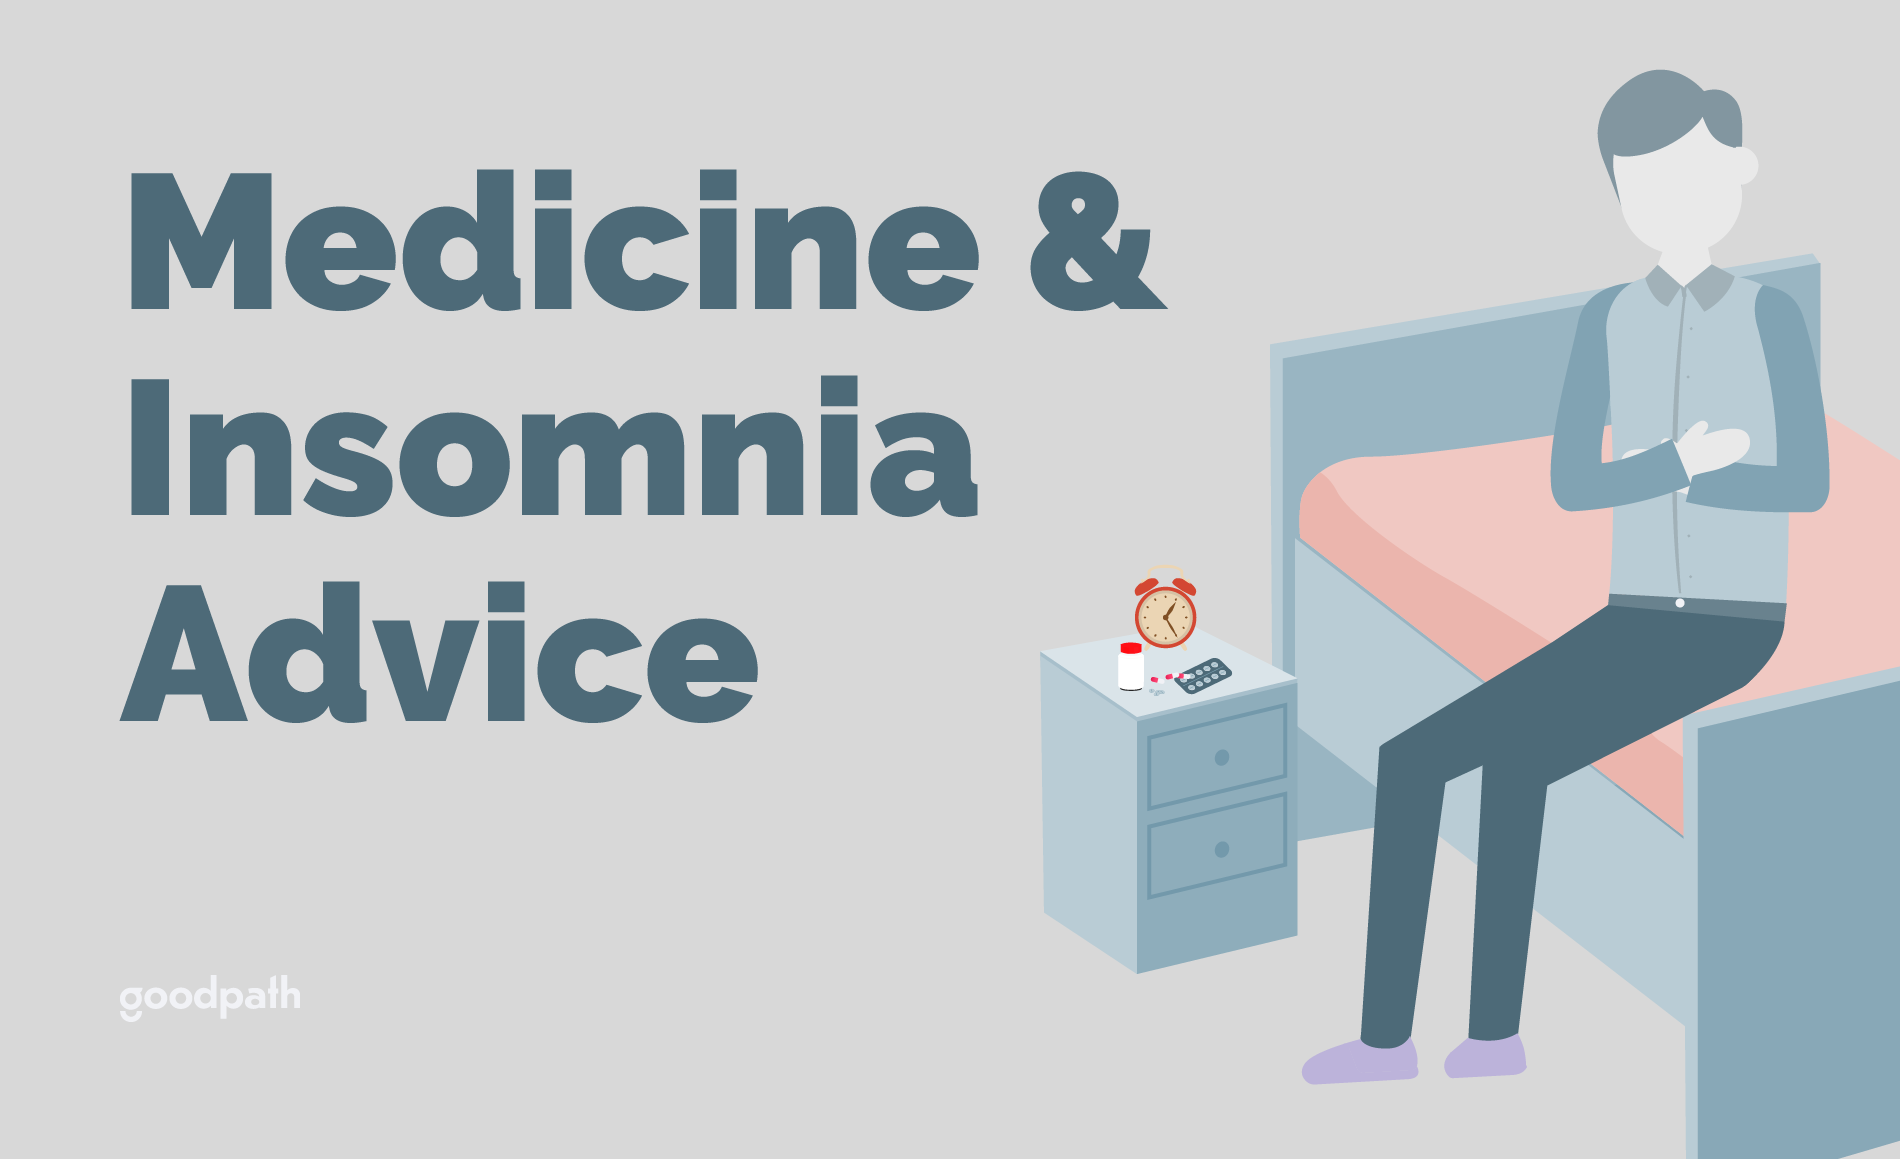 Medicines and Insomnia Advice